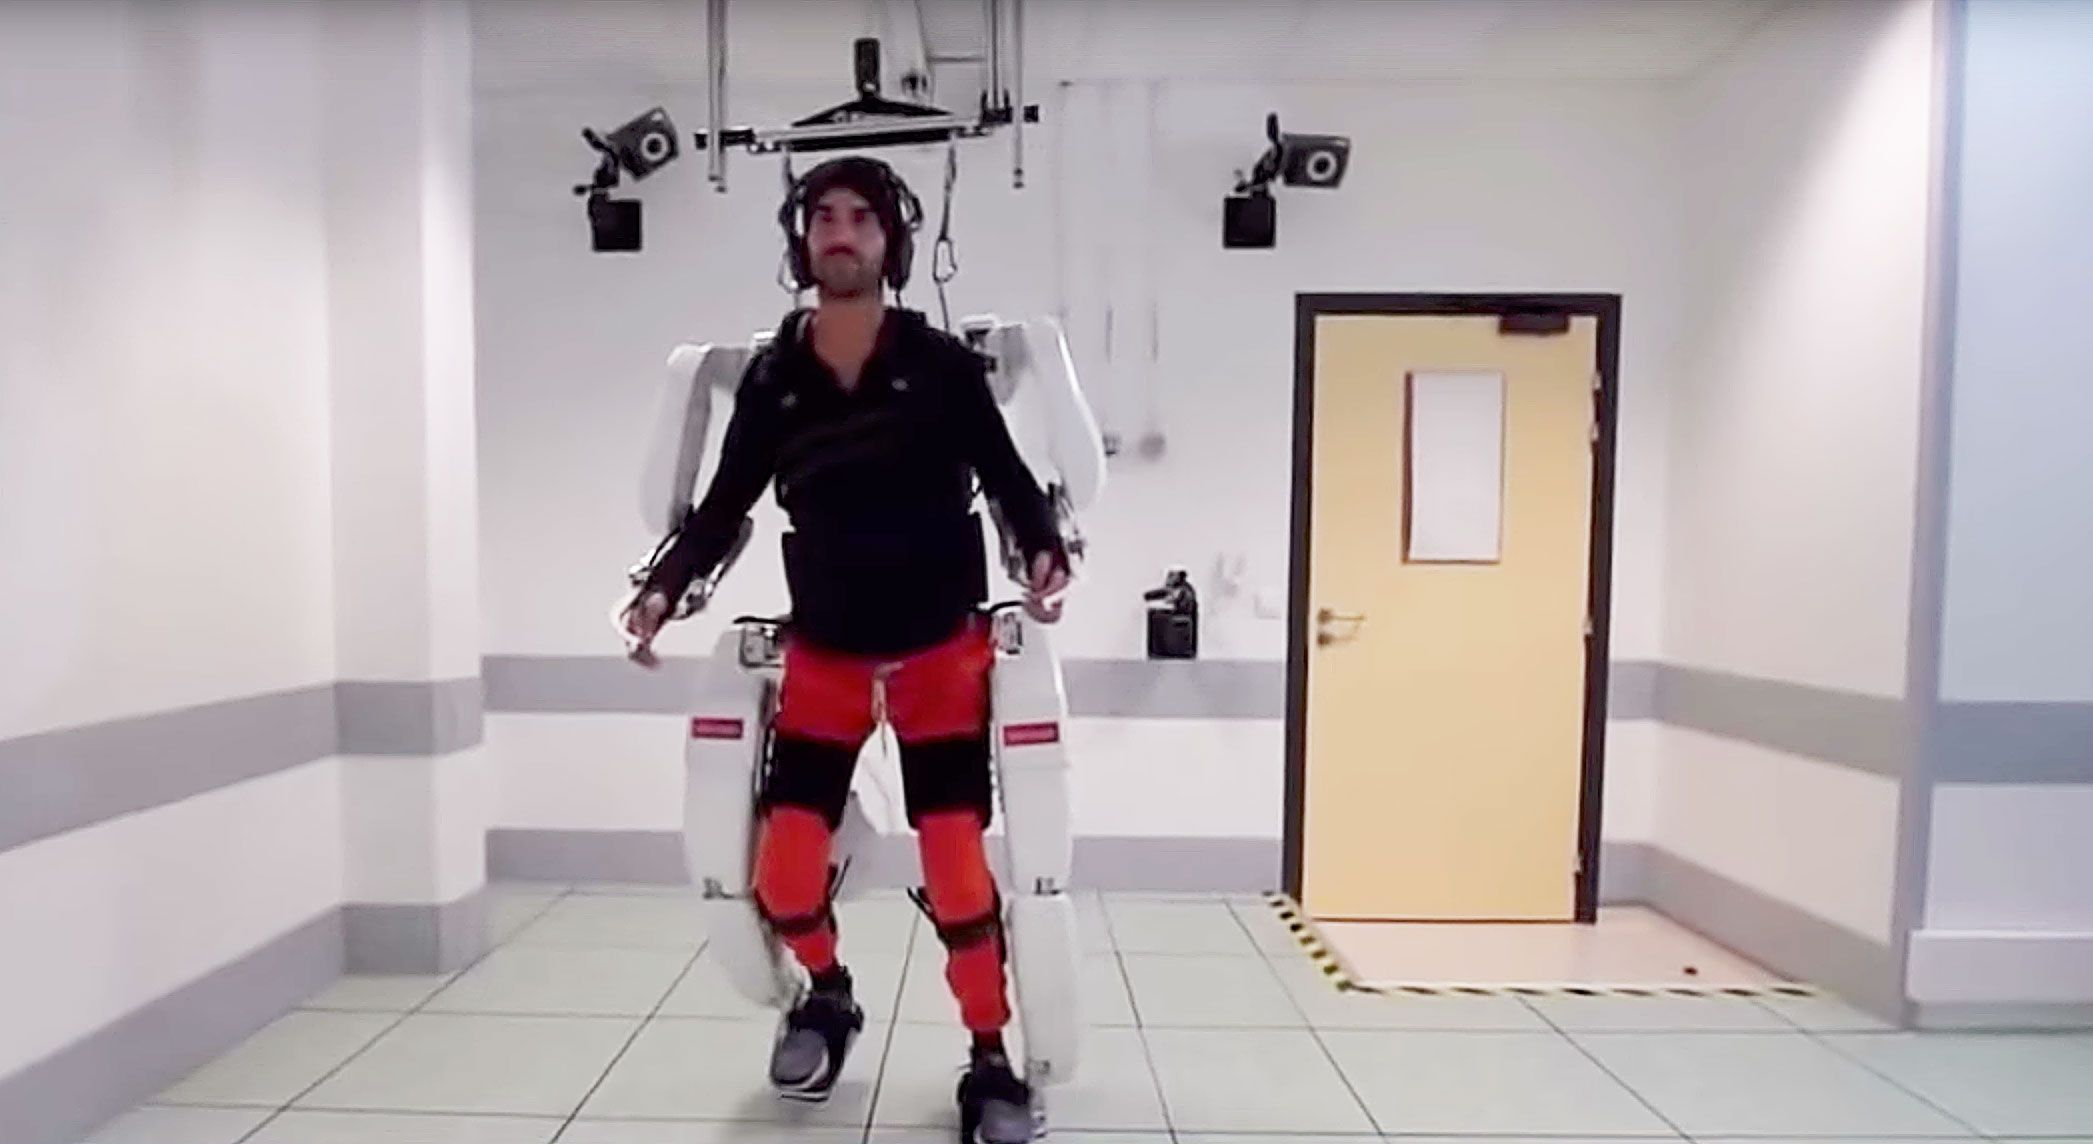 A Paralyzed Man Just Walked Again Using a Brain-Controlled Robotic Suit